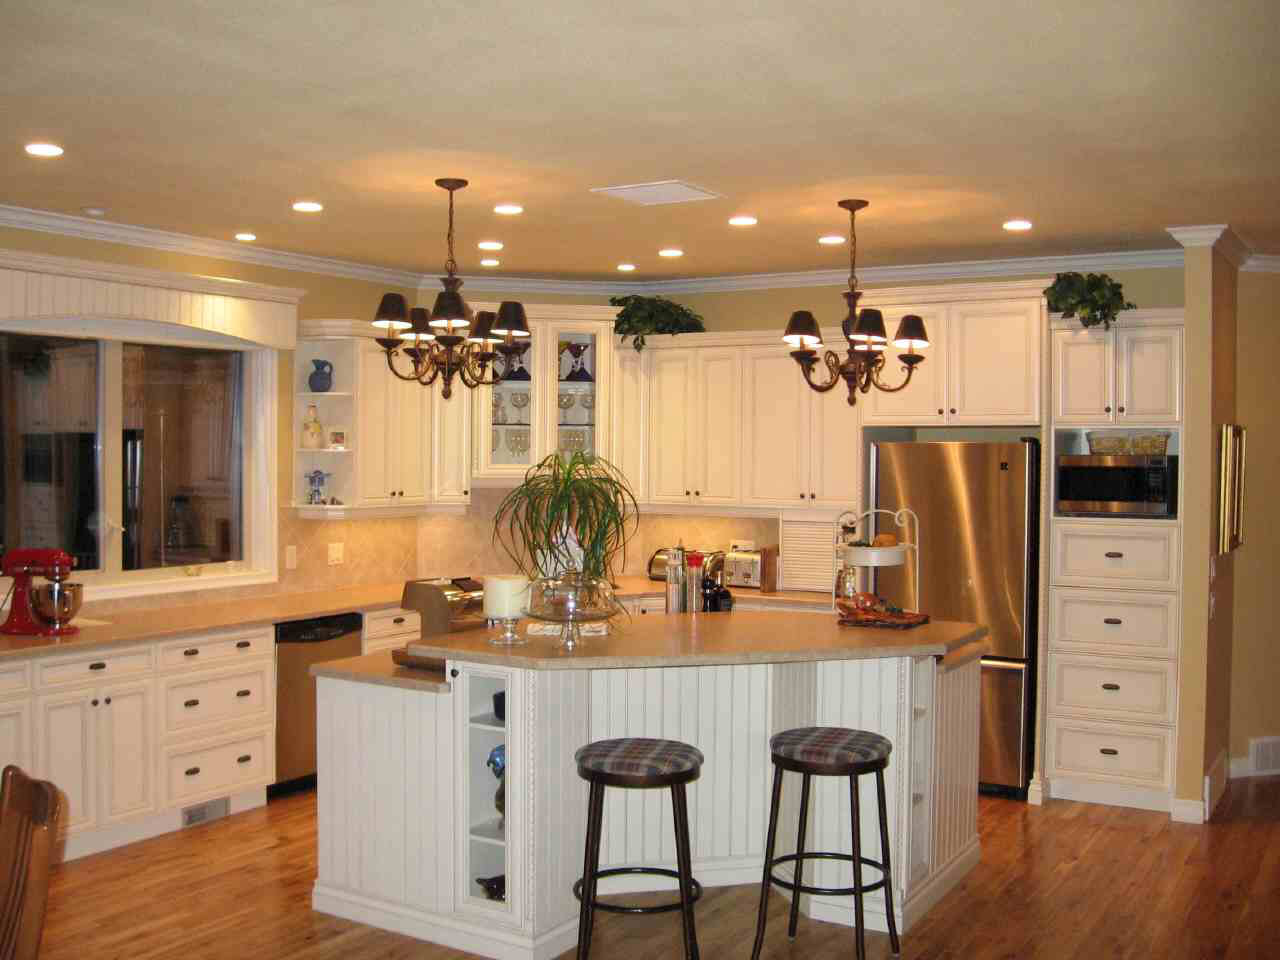 Interior kitchen design ideas home ideas decoration for Kitchen interior decorating ideas